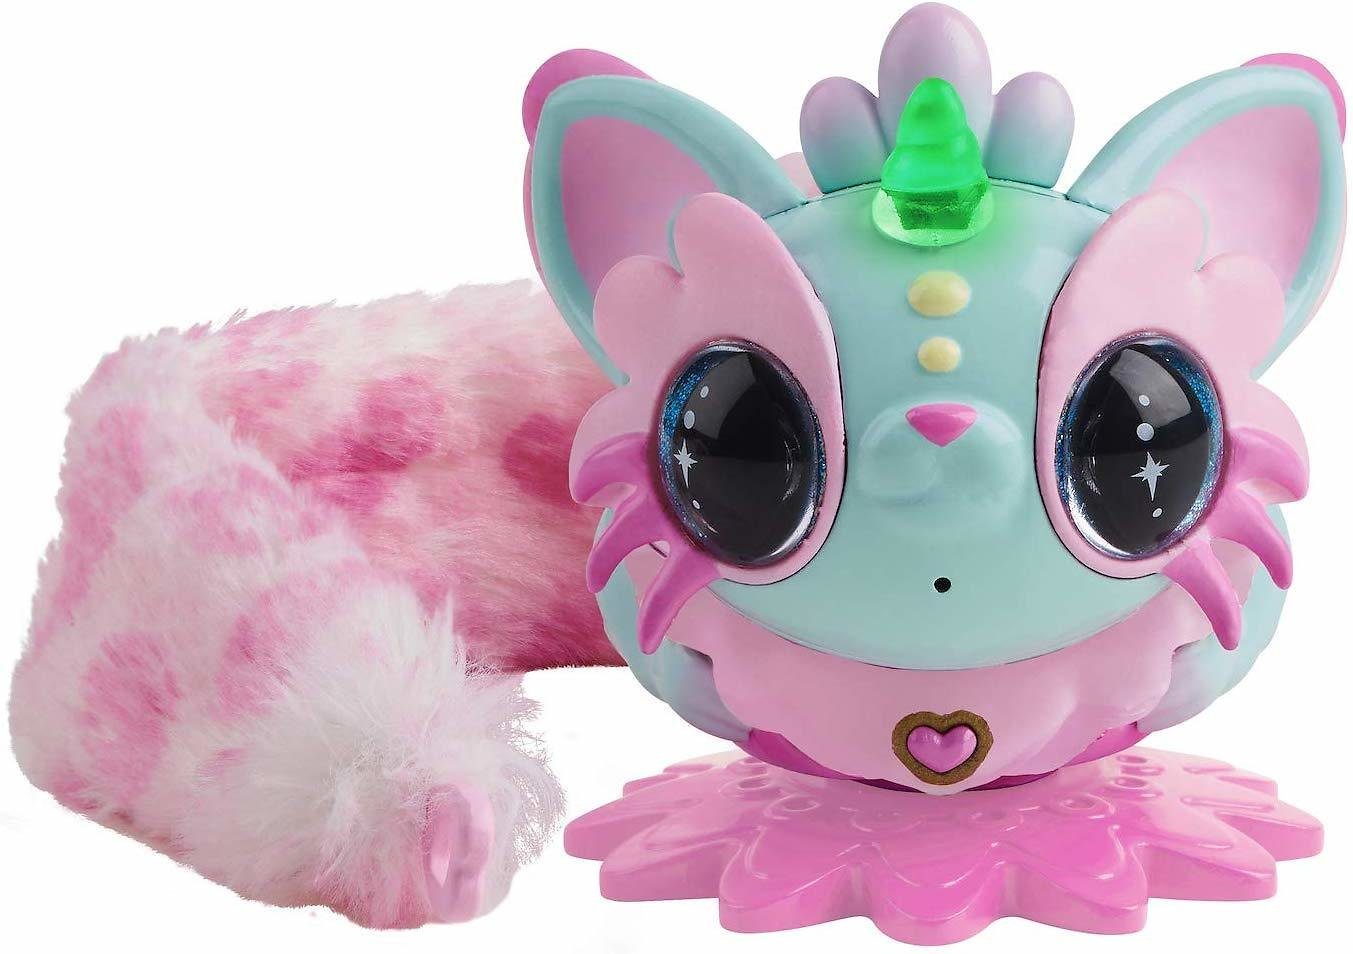 WowWee Pixie Belles - Interactive Enchanted Animal Toy